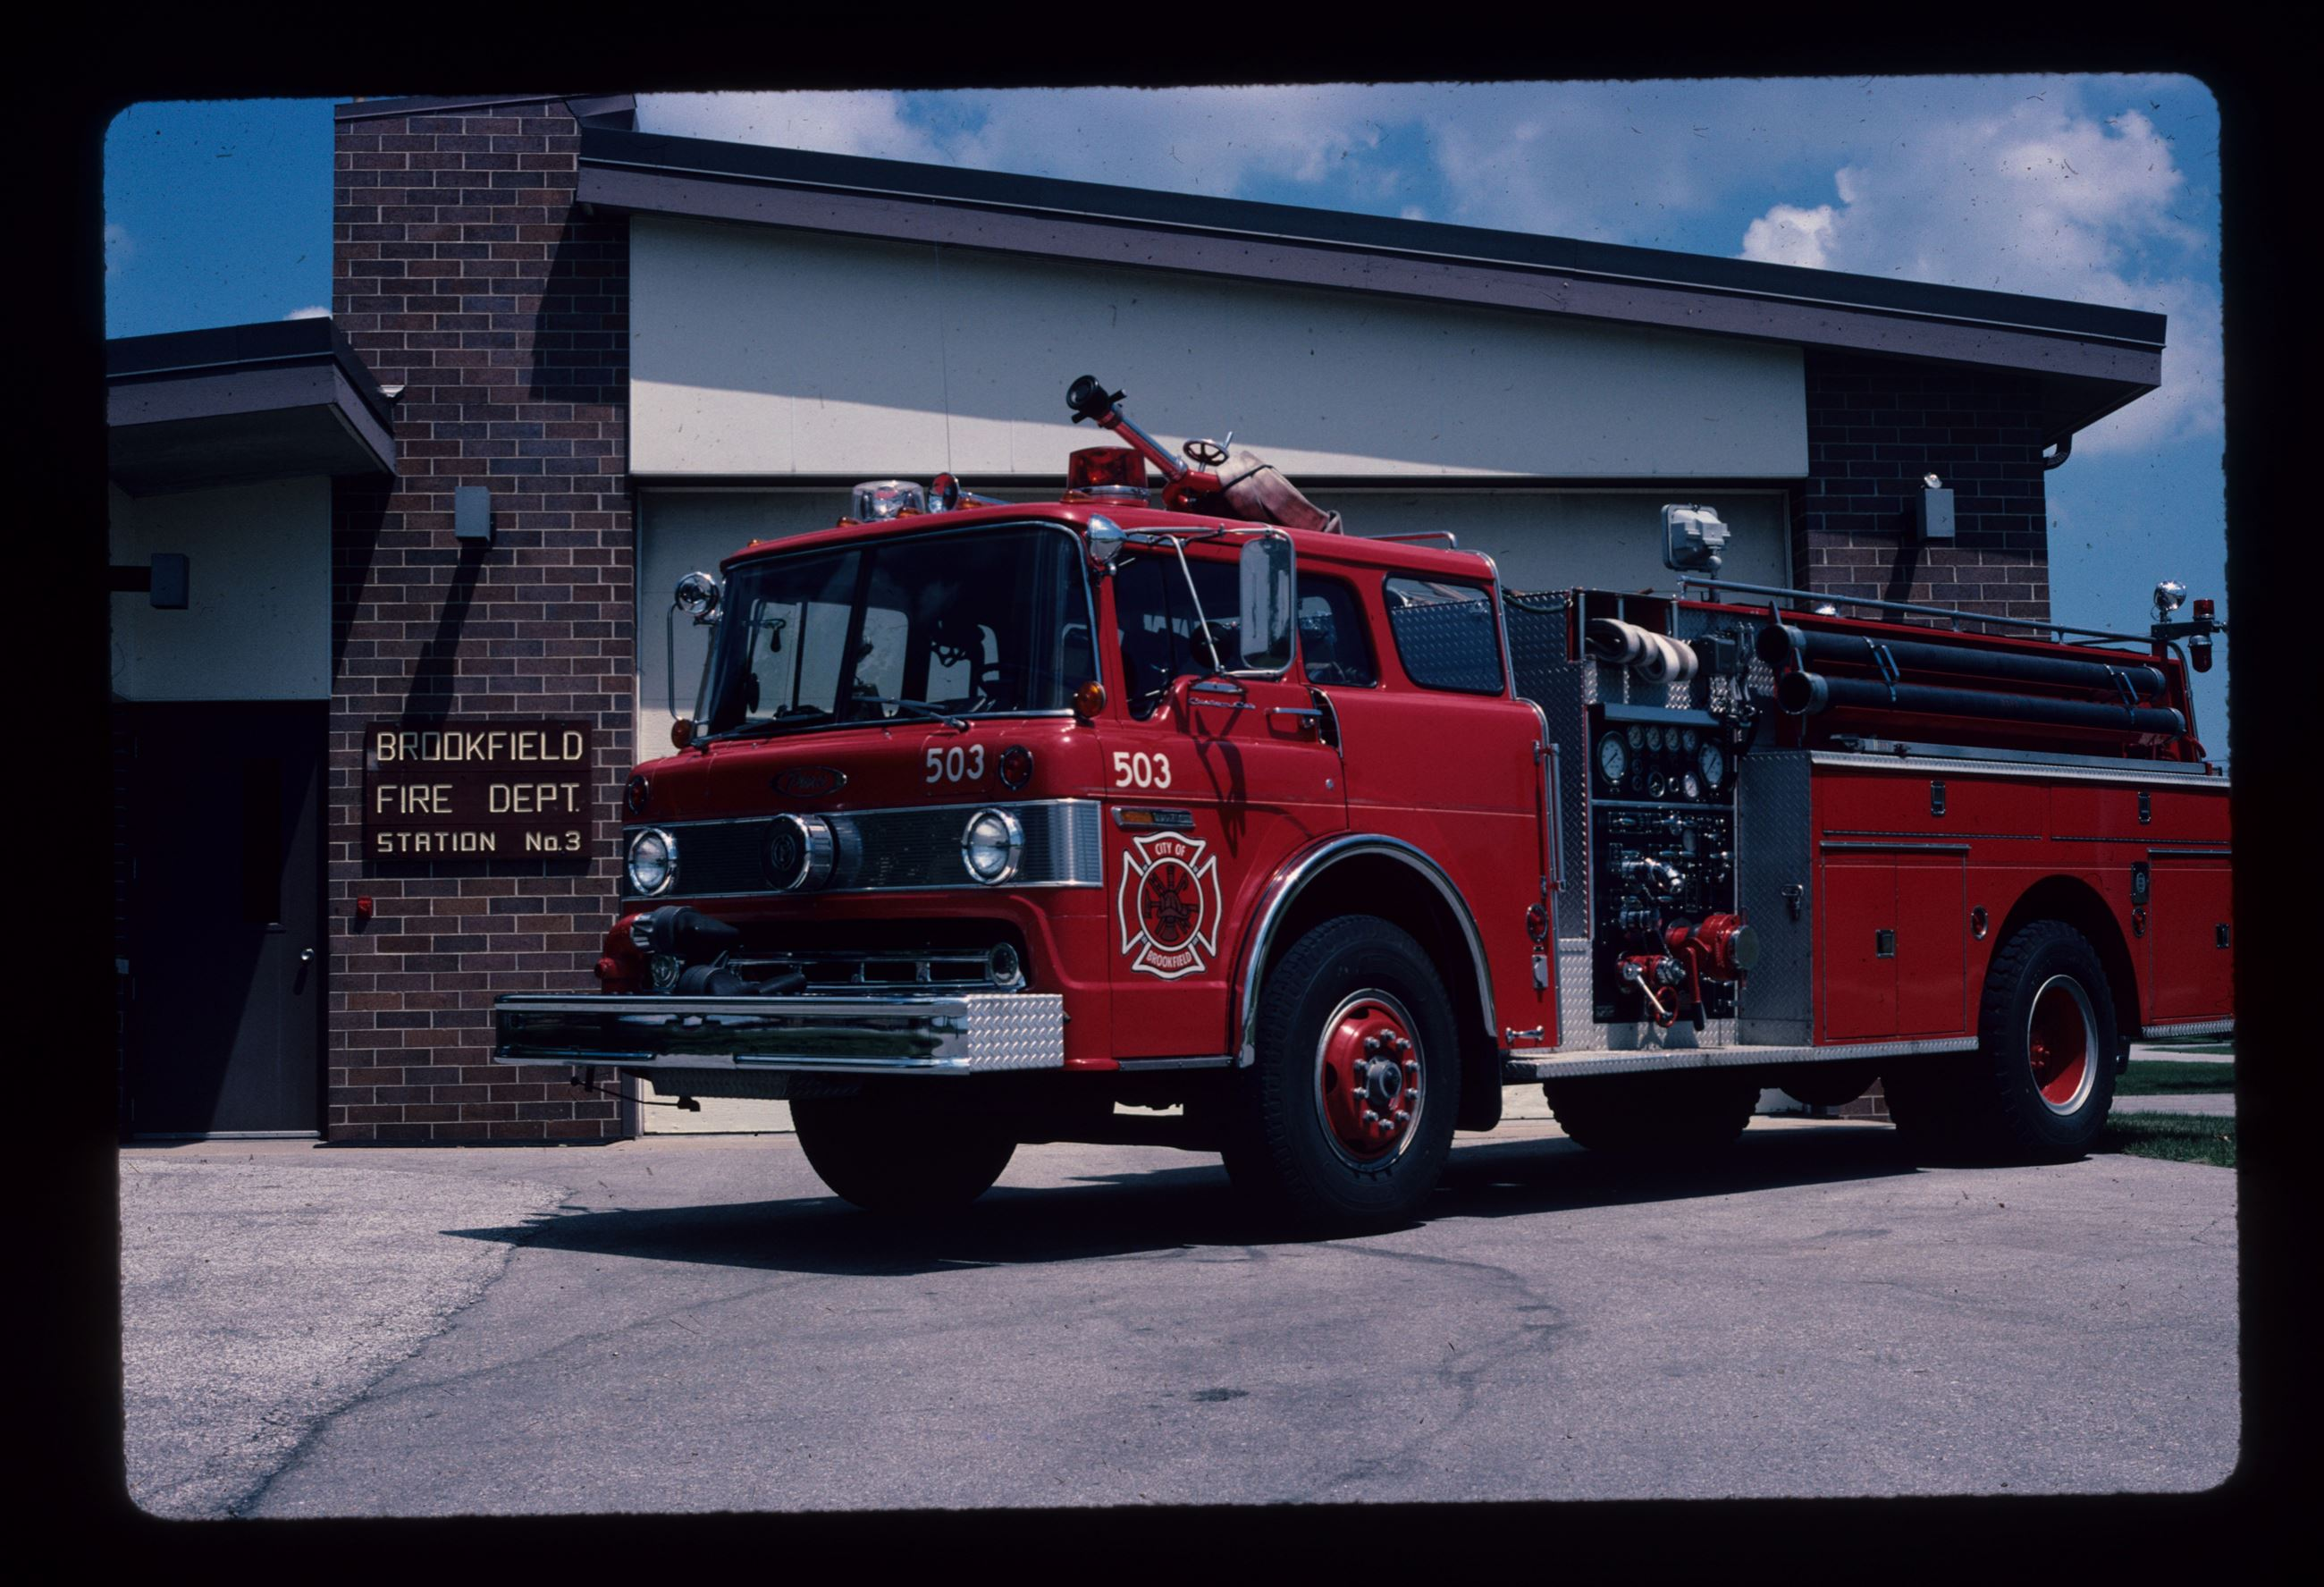 1976 Pierce Arrow Engine 503 in front of Old Station 3